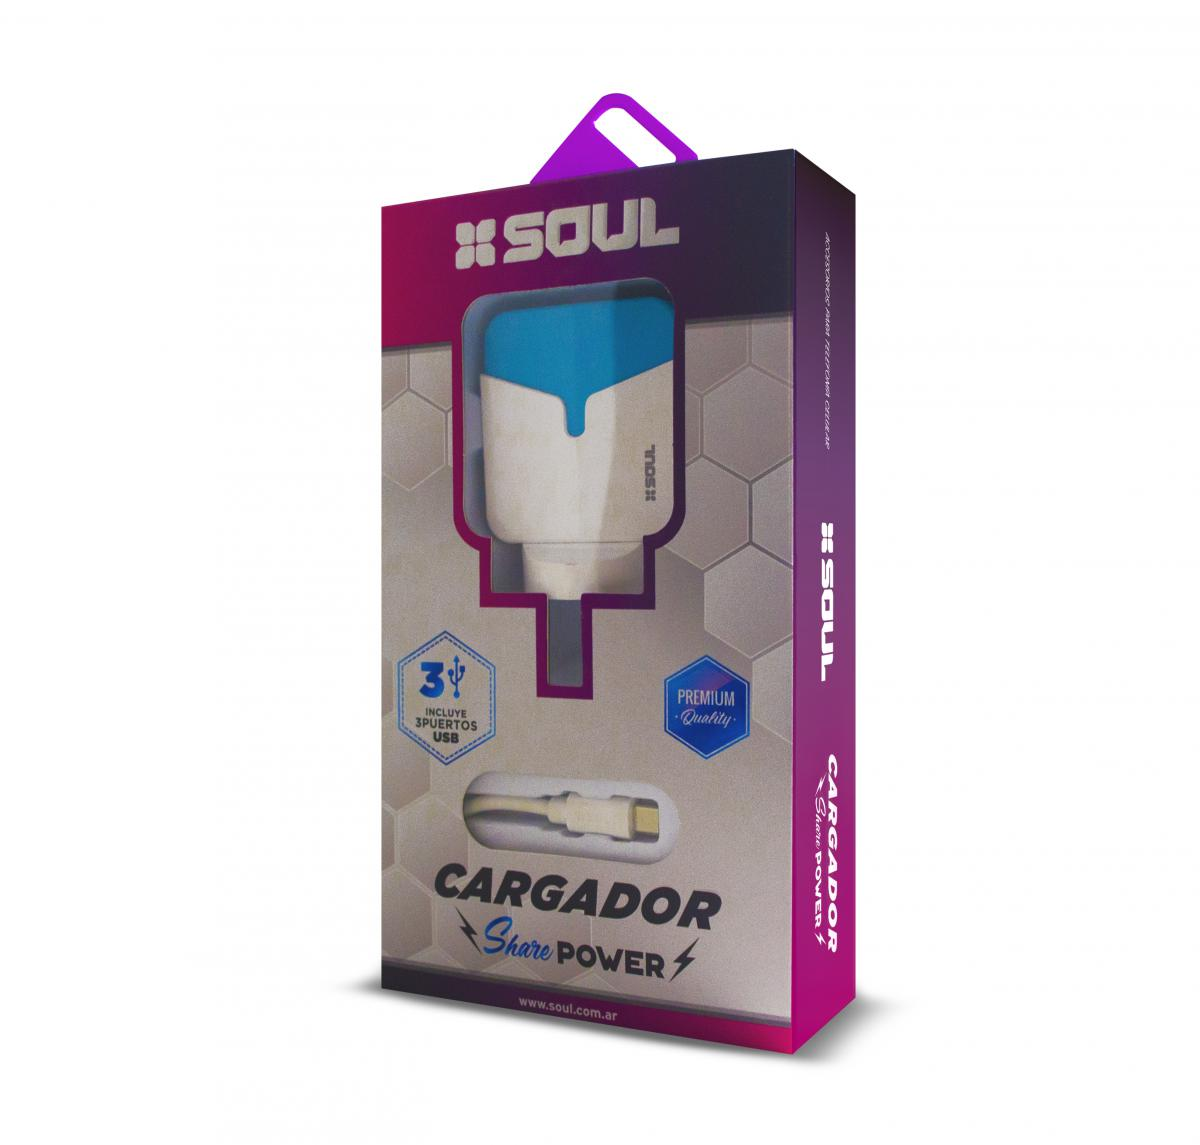 cargador 220v micro usb soul power 3.4a